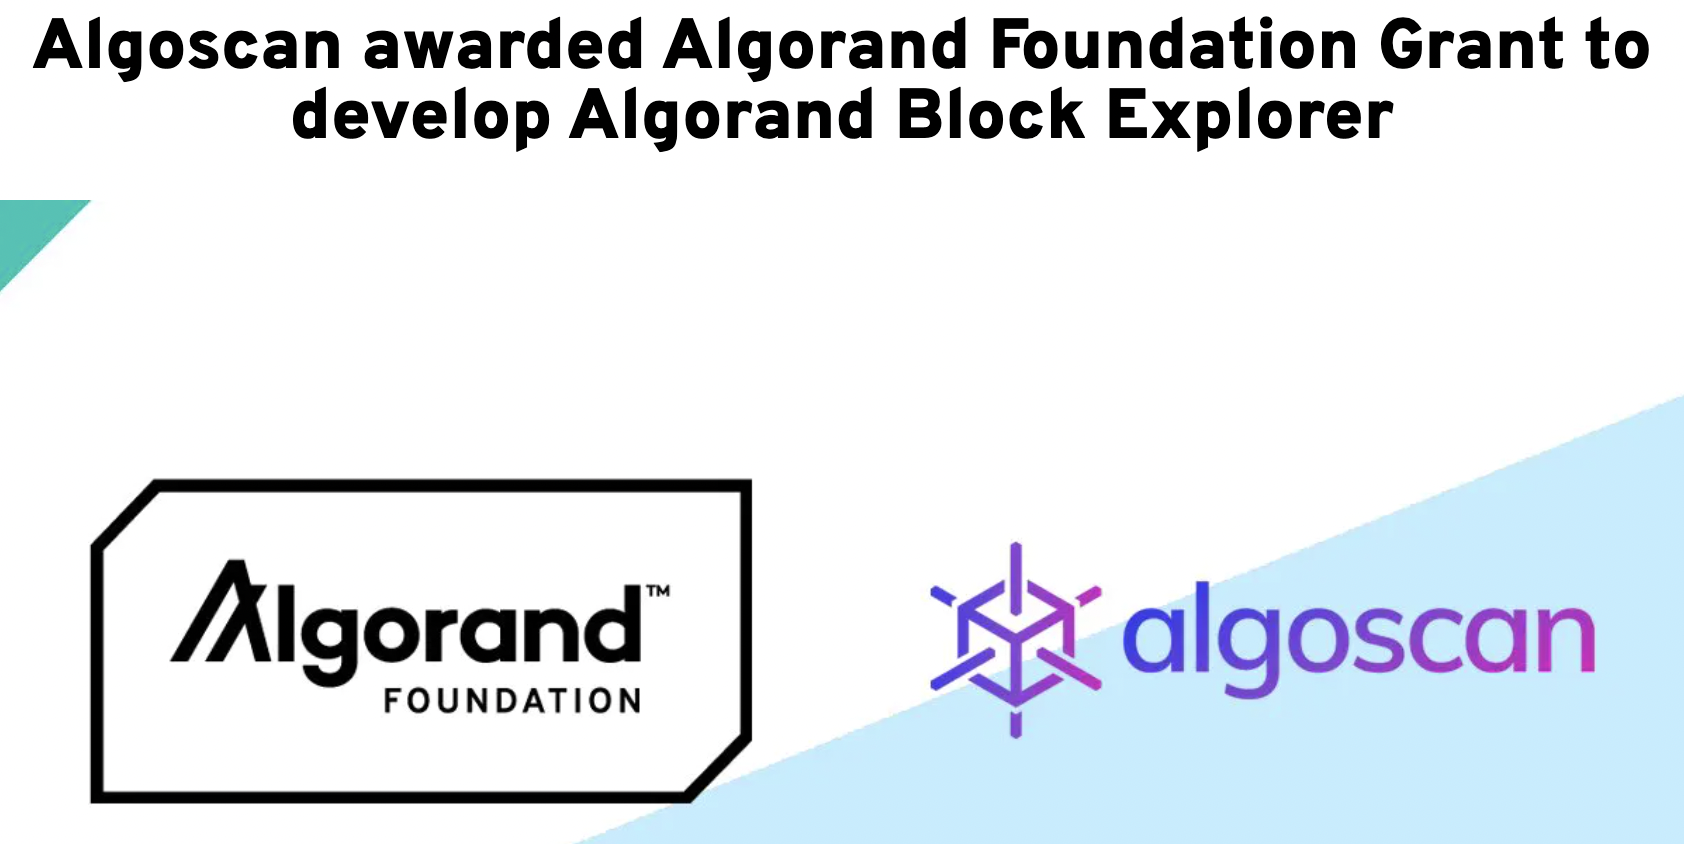 Sample grant given by the Algorand Foundation to Algoscan